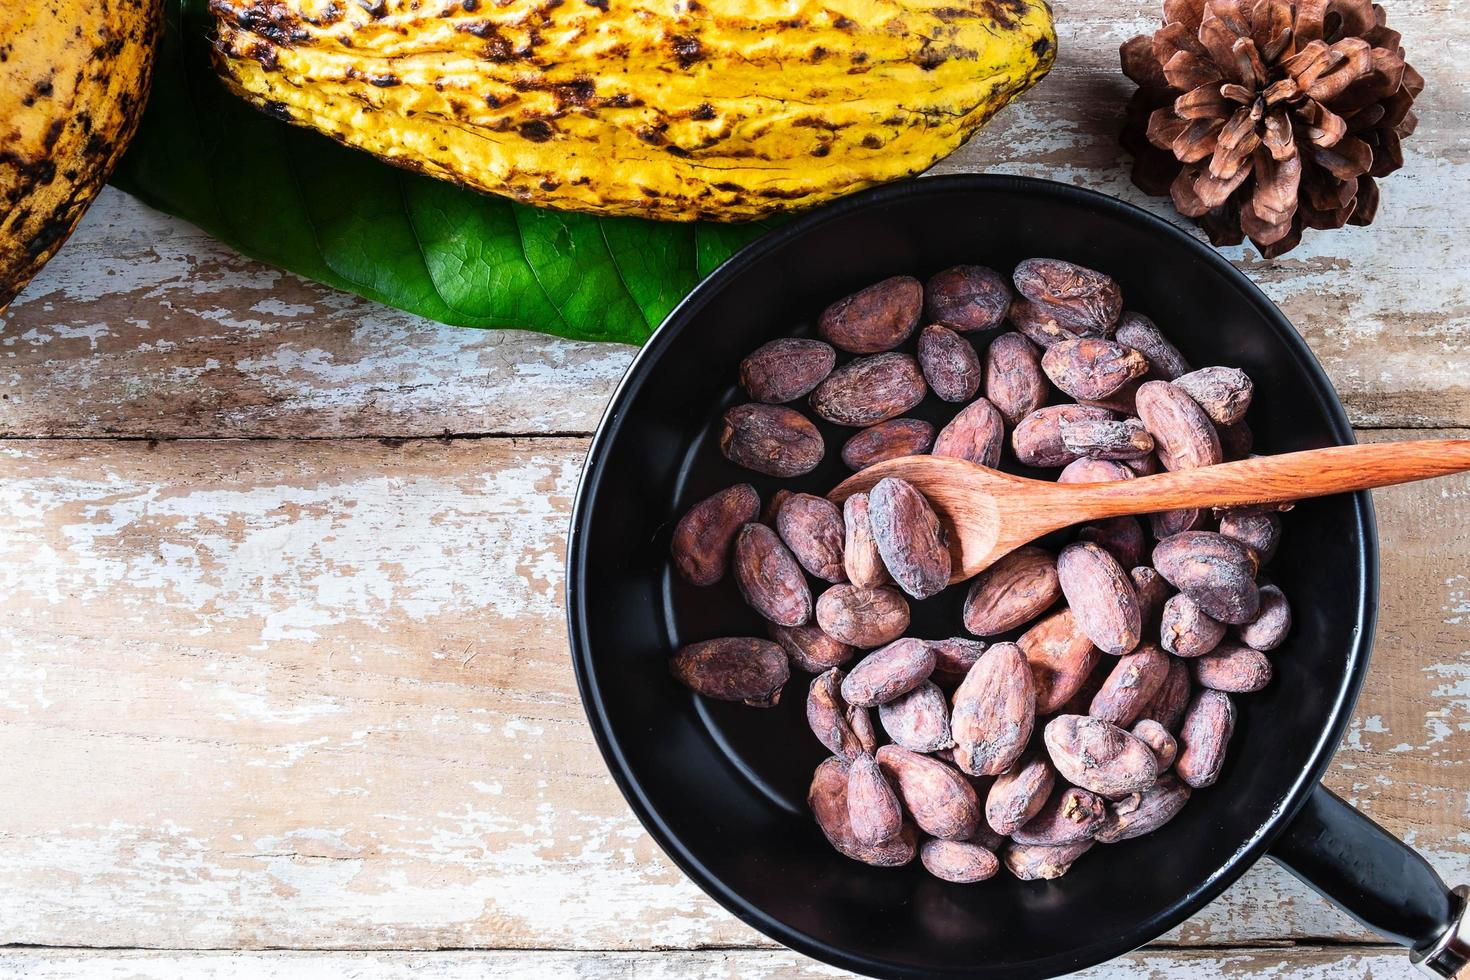 Raw cacao beans and cocoa pods photo